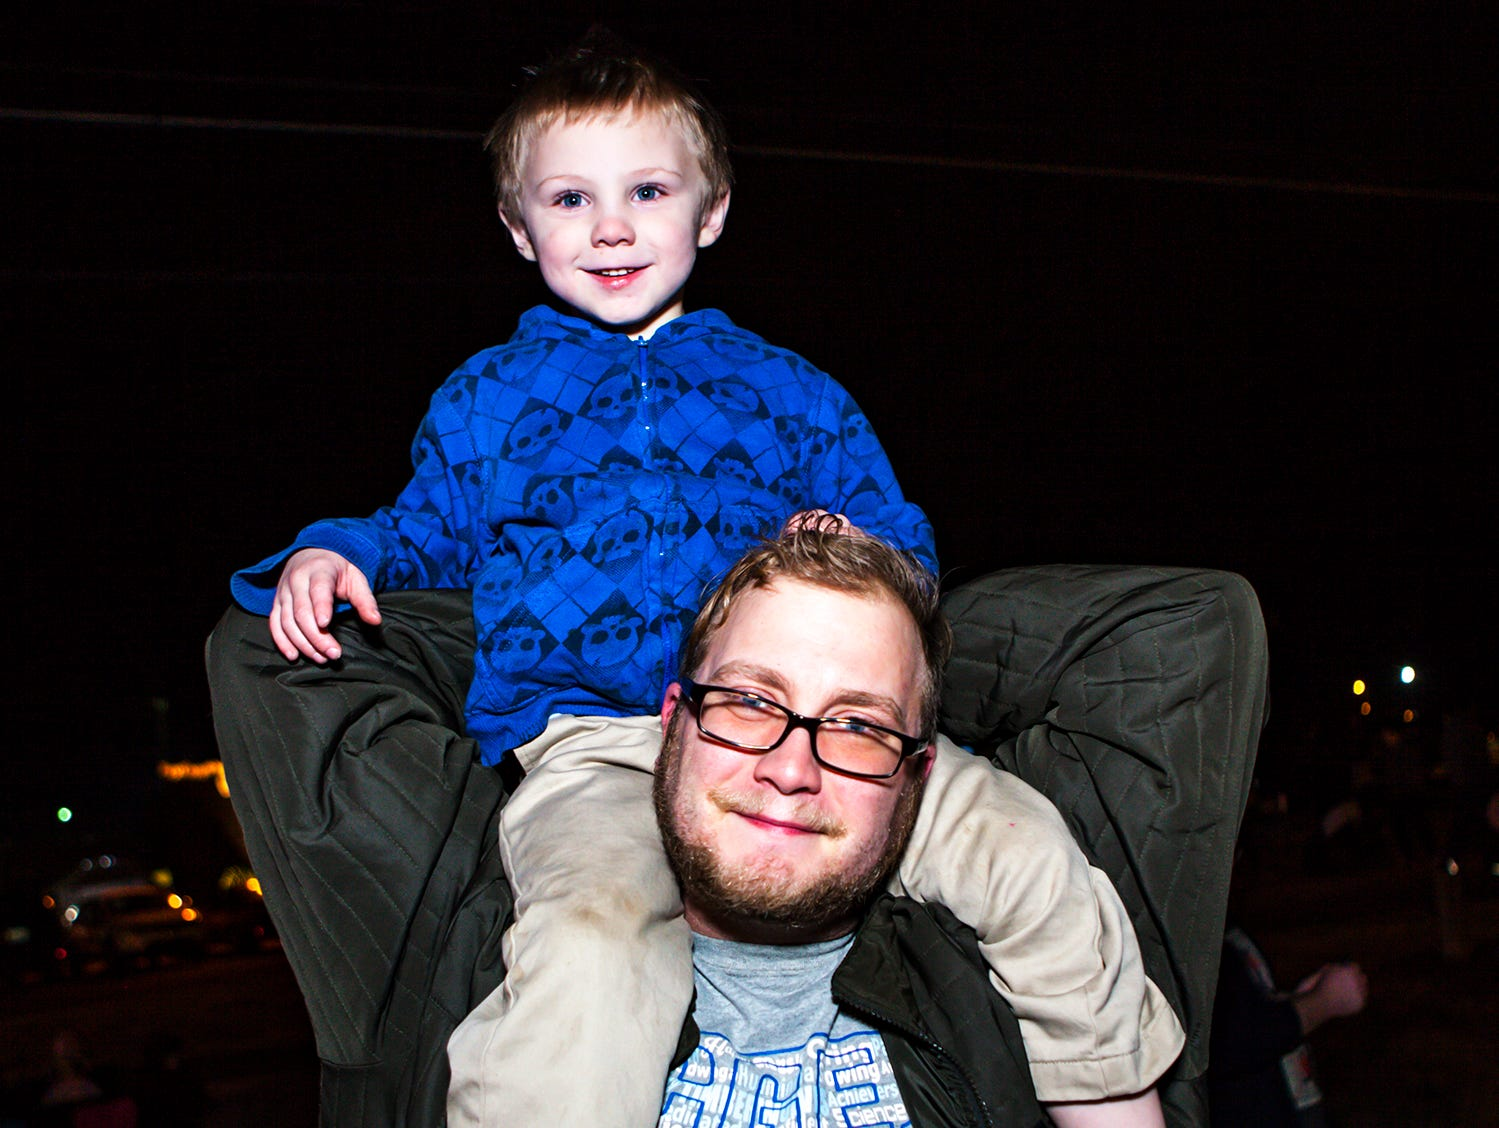 Chris Richesin, 4, gets a good view of the action thanks to his father Doug  at La Vergne's 2018 Christmas Parade of Lights, held Saturday, Dec. 1, 2018.